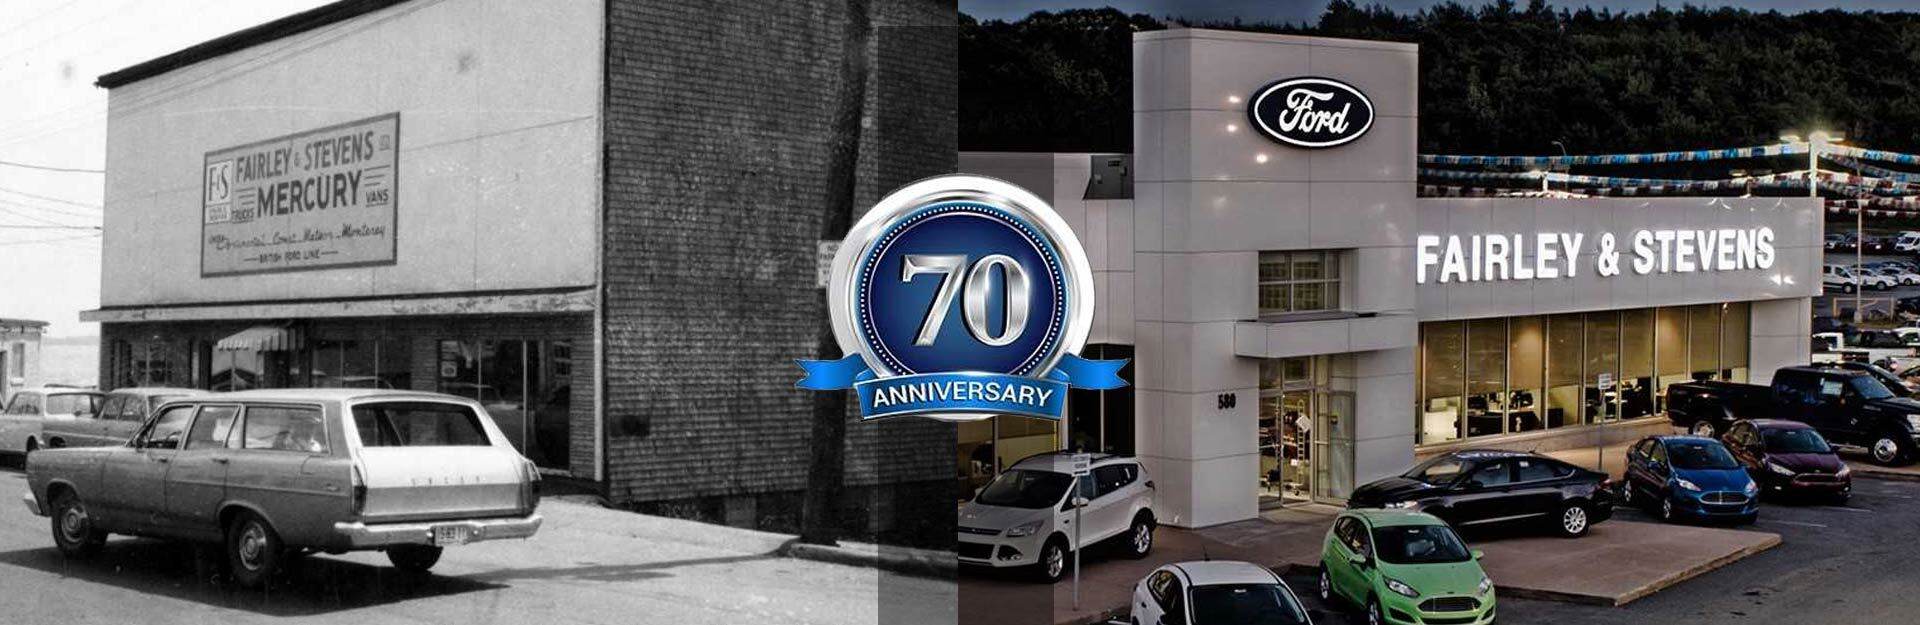 Fairley & Stevens Ford 70 Year Anniversary